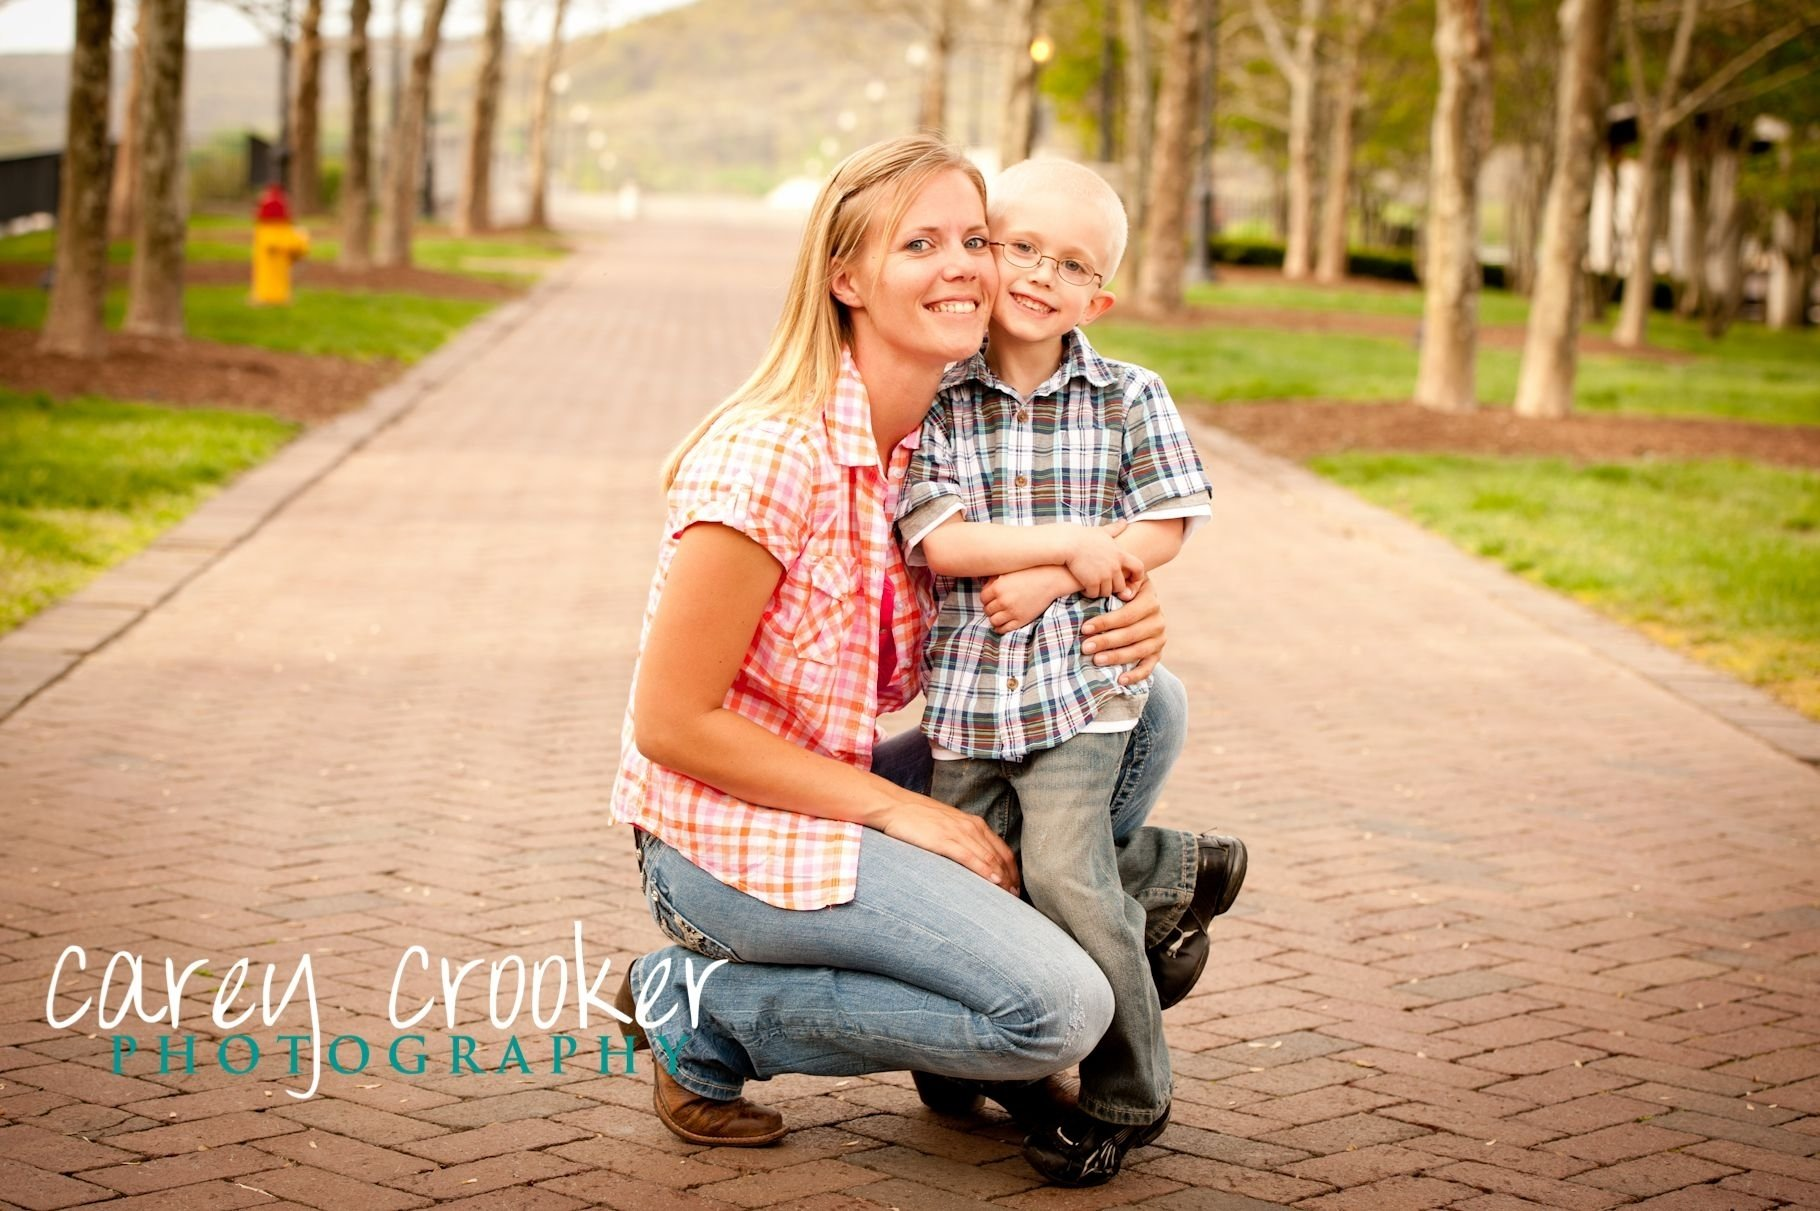 10 Fashionable Mother And Son Picture Ideas sara david williams mother son portraits mother son mother son 2020